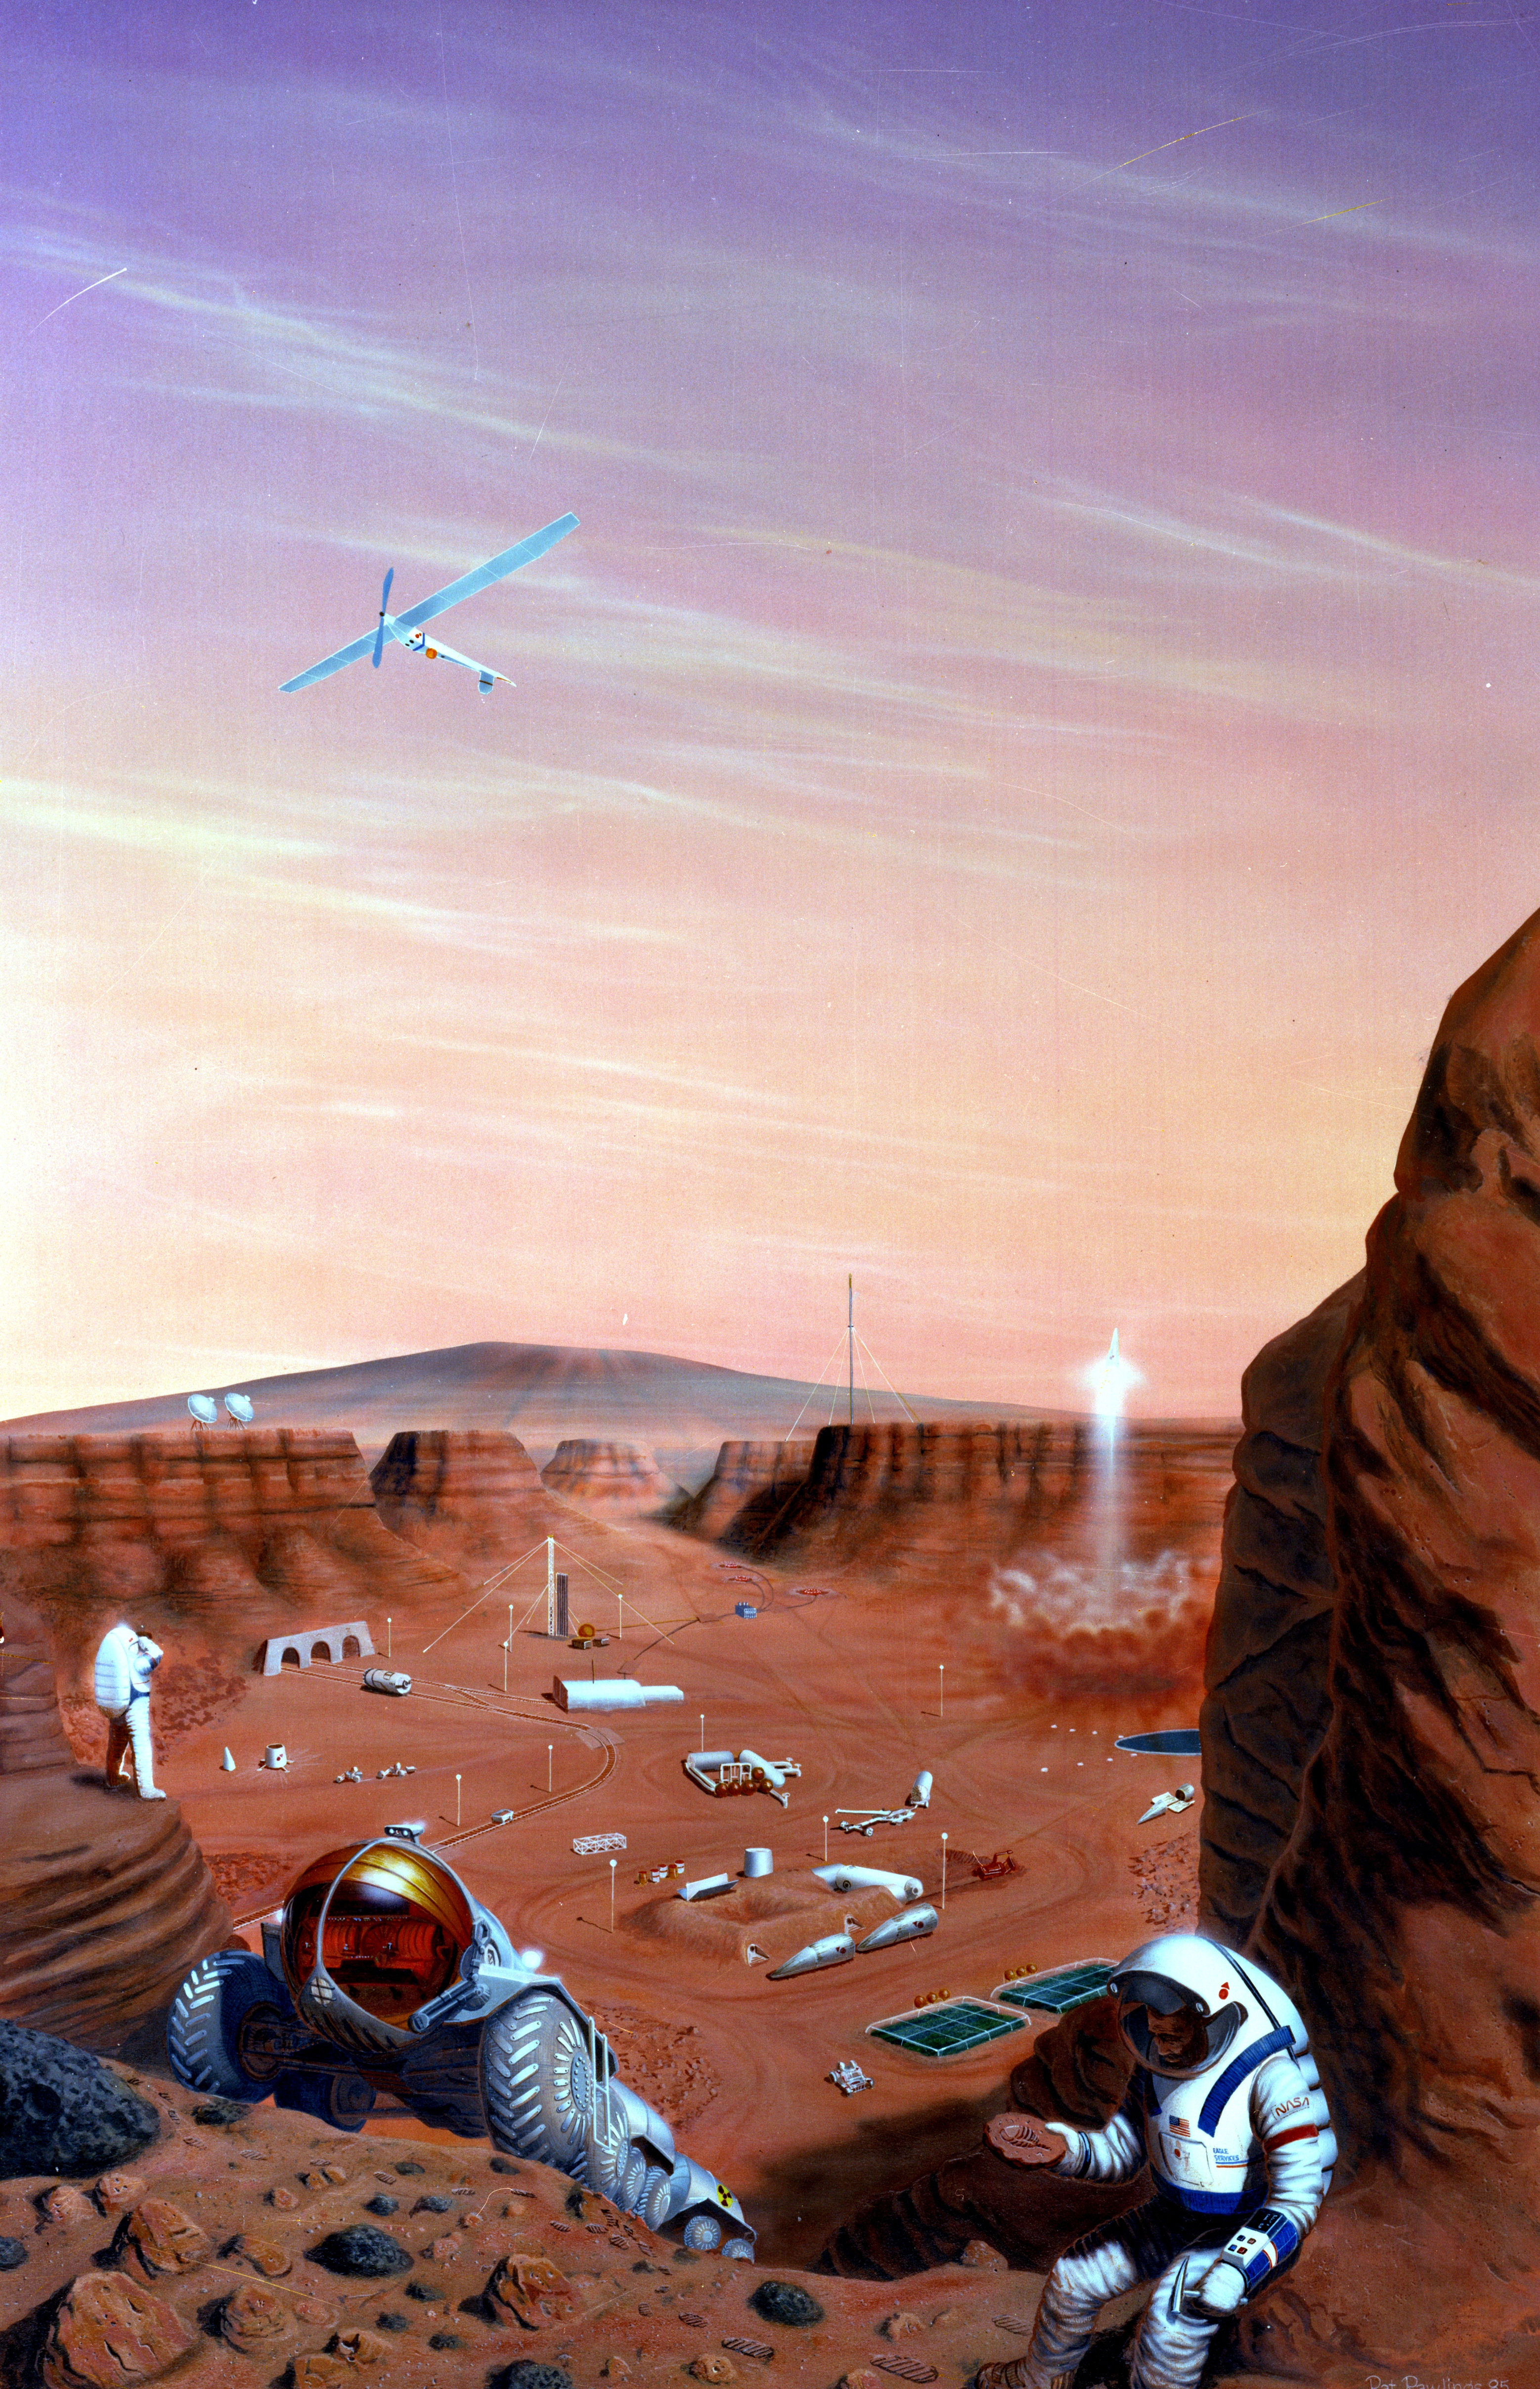 Mars One Project, A One Way Ticket To Mars - YouTube